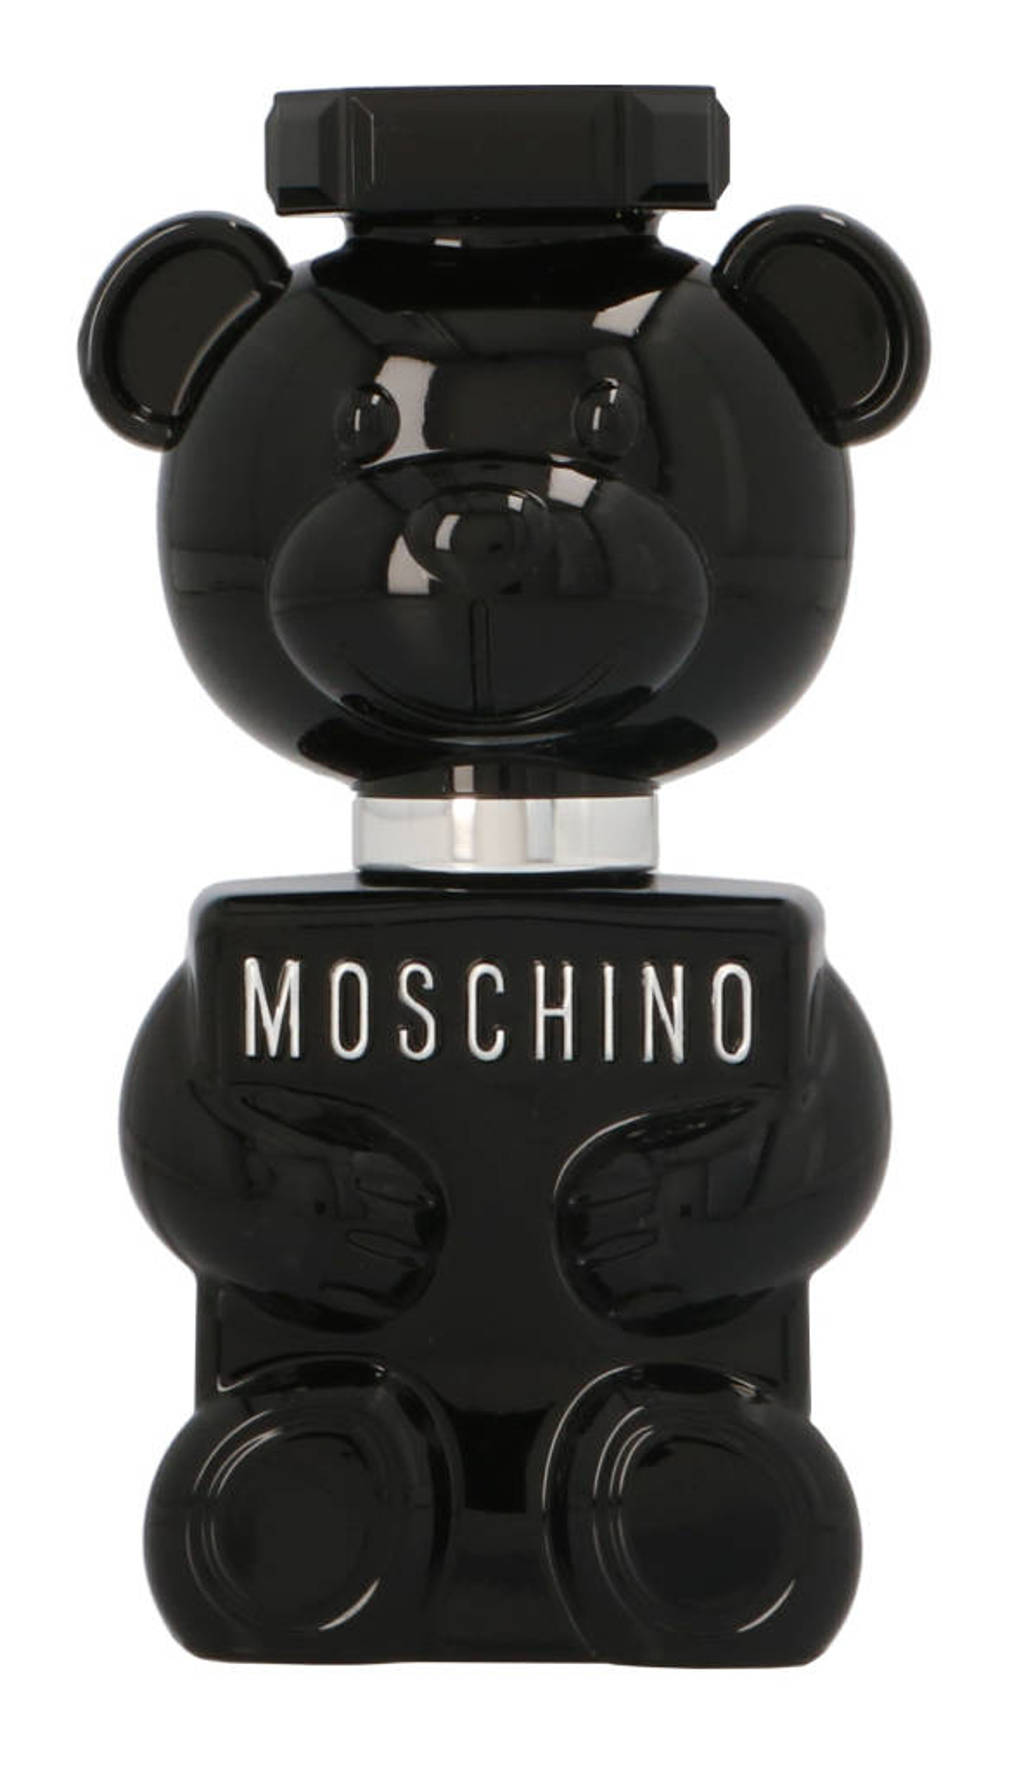 Moschino Toy Boy eau de parfum - 30 ml